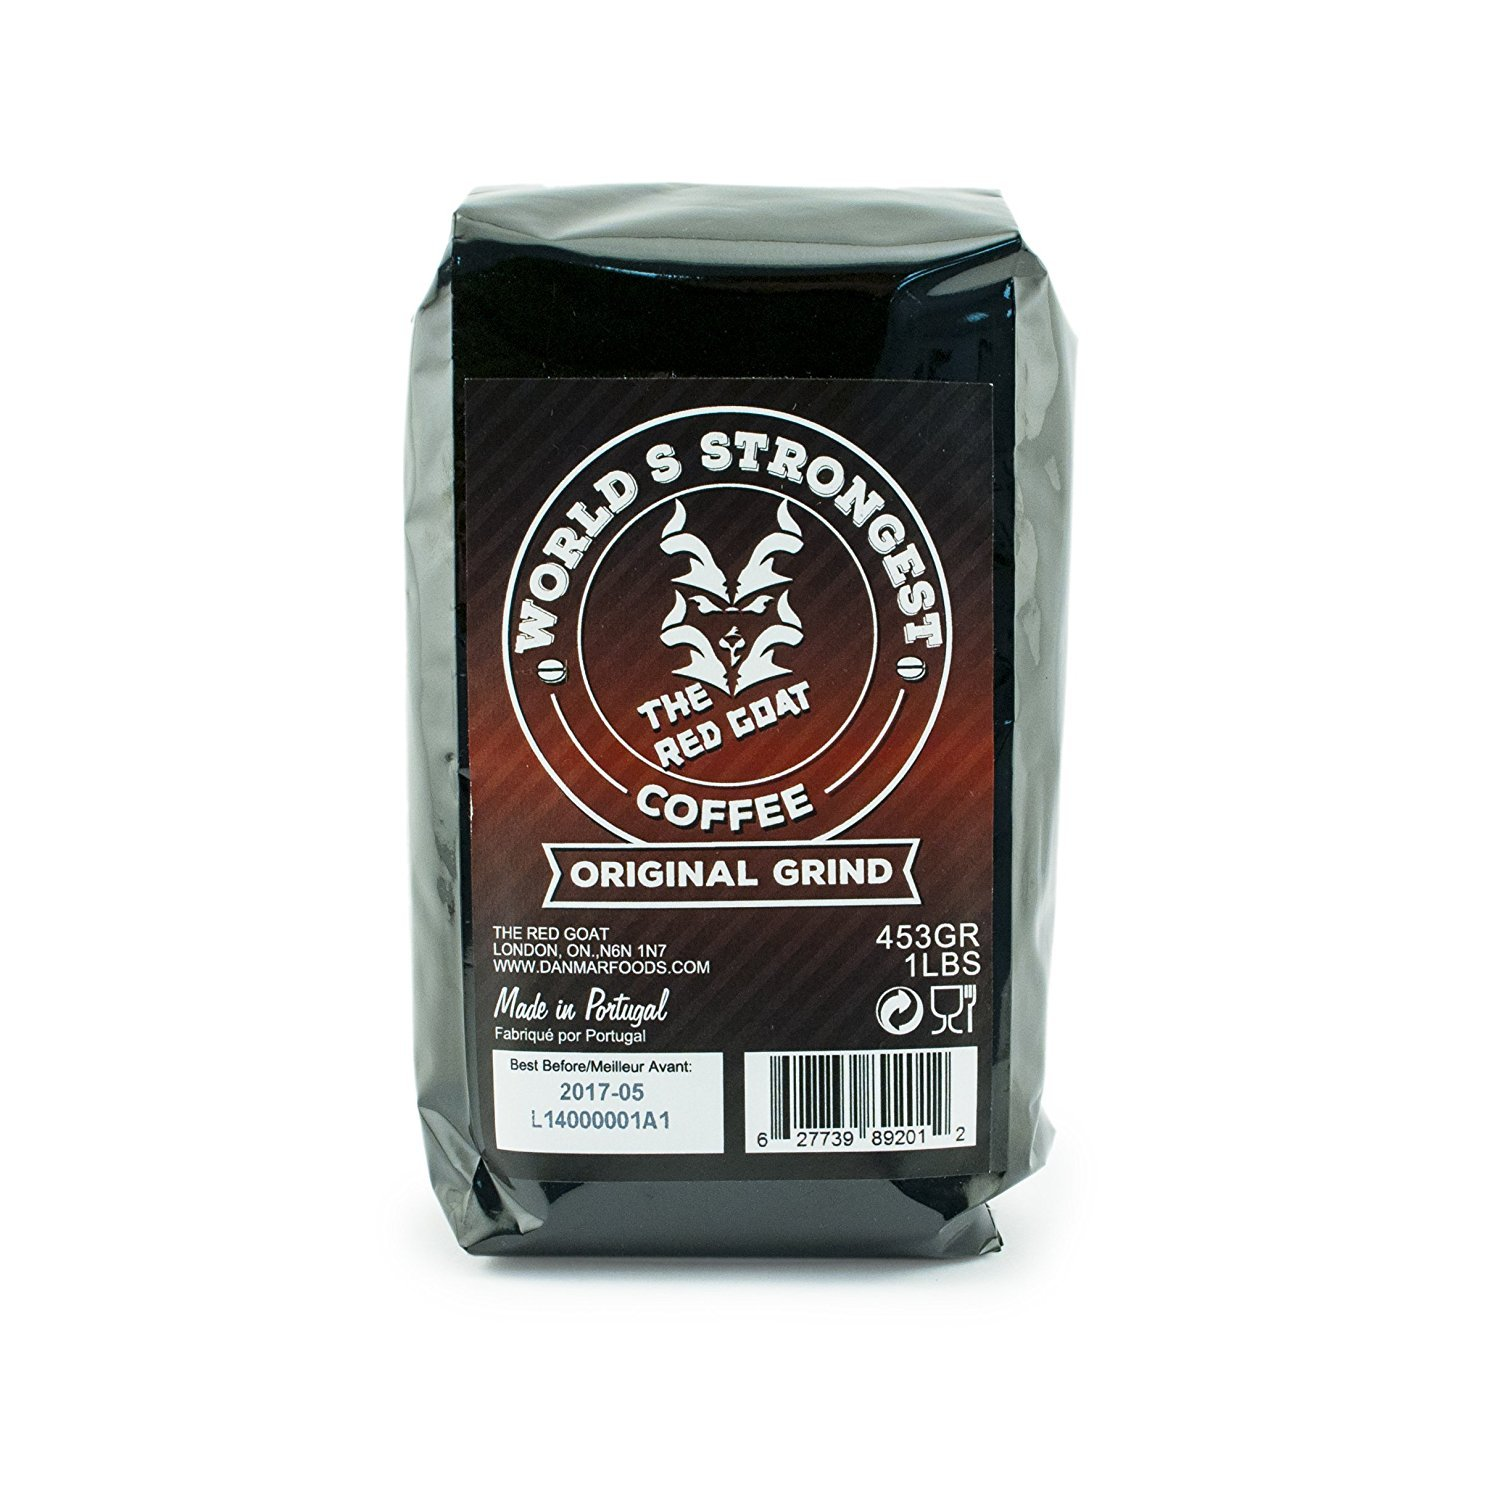 The Red Goat Original Ground Coffee, the World's Strongest Coffeend - 16 Ounce Bag (Original Grind)